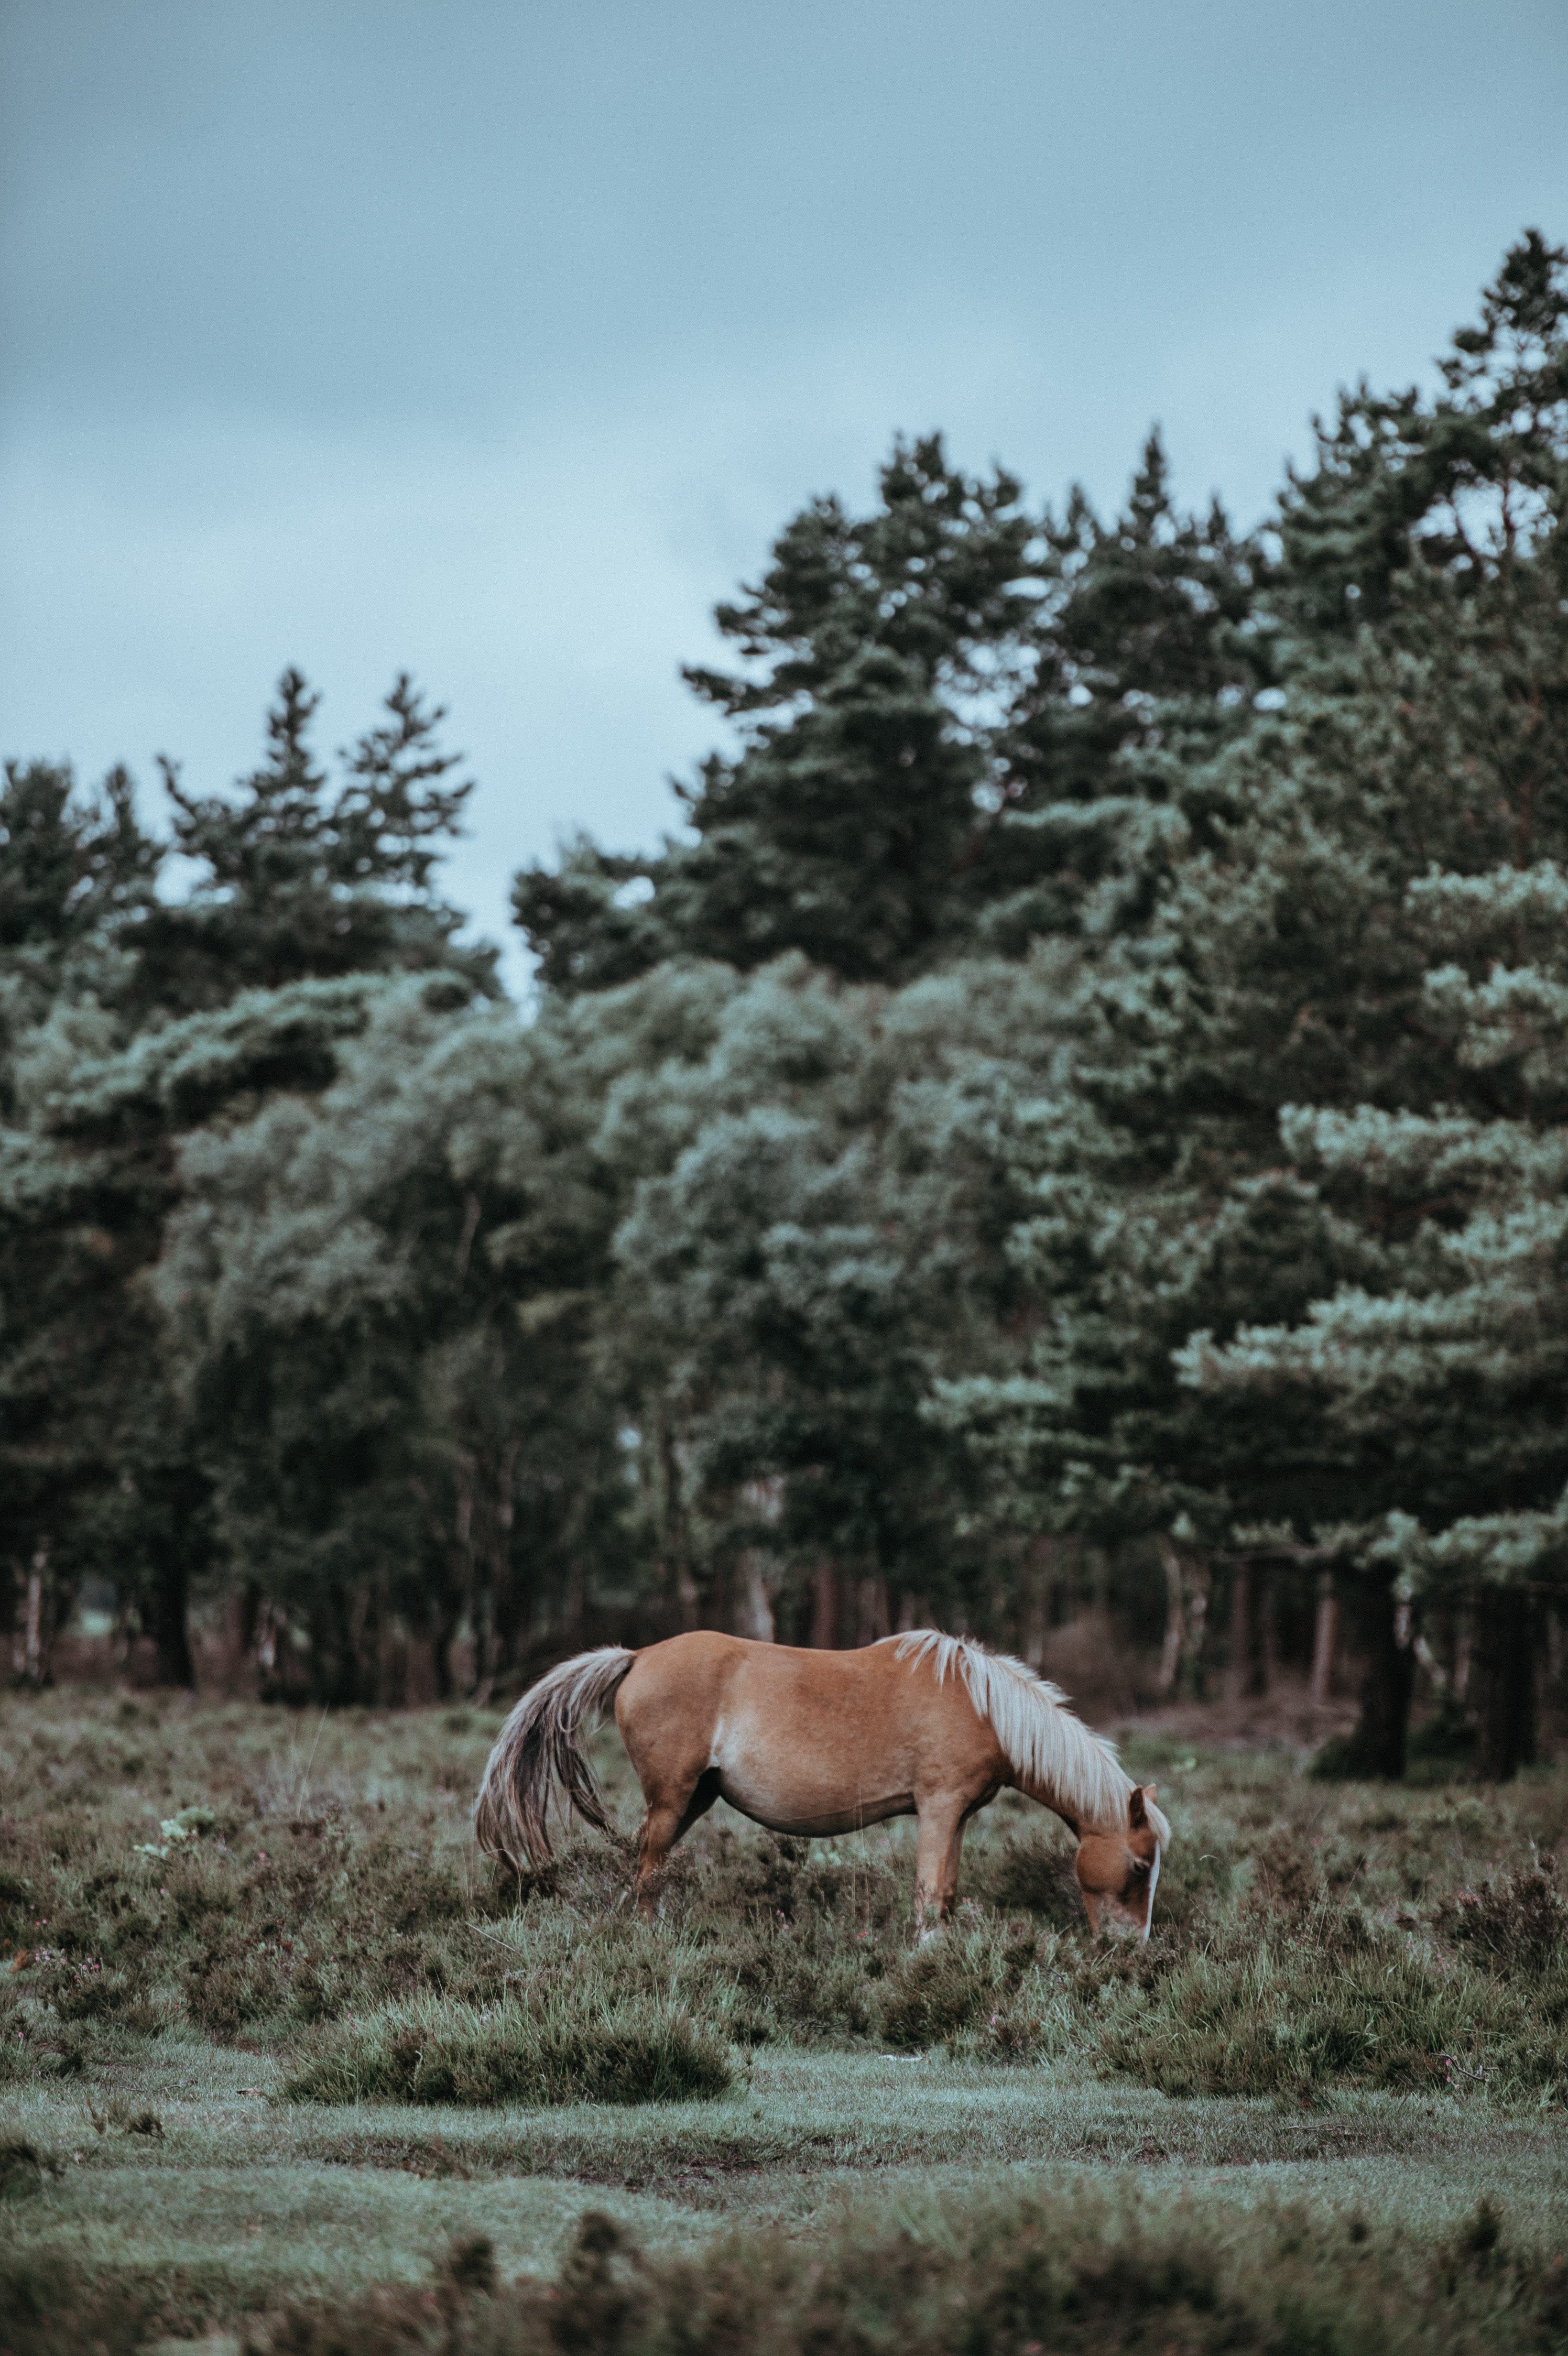 A light chestnut with a flaxen mane grazing in the grass near coniferous trees